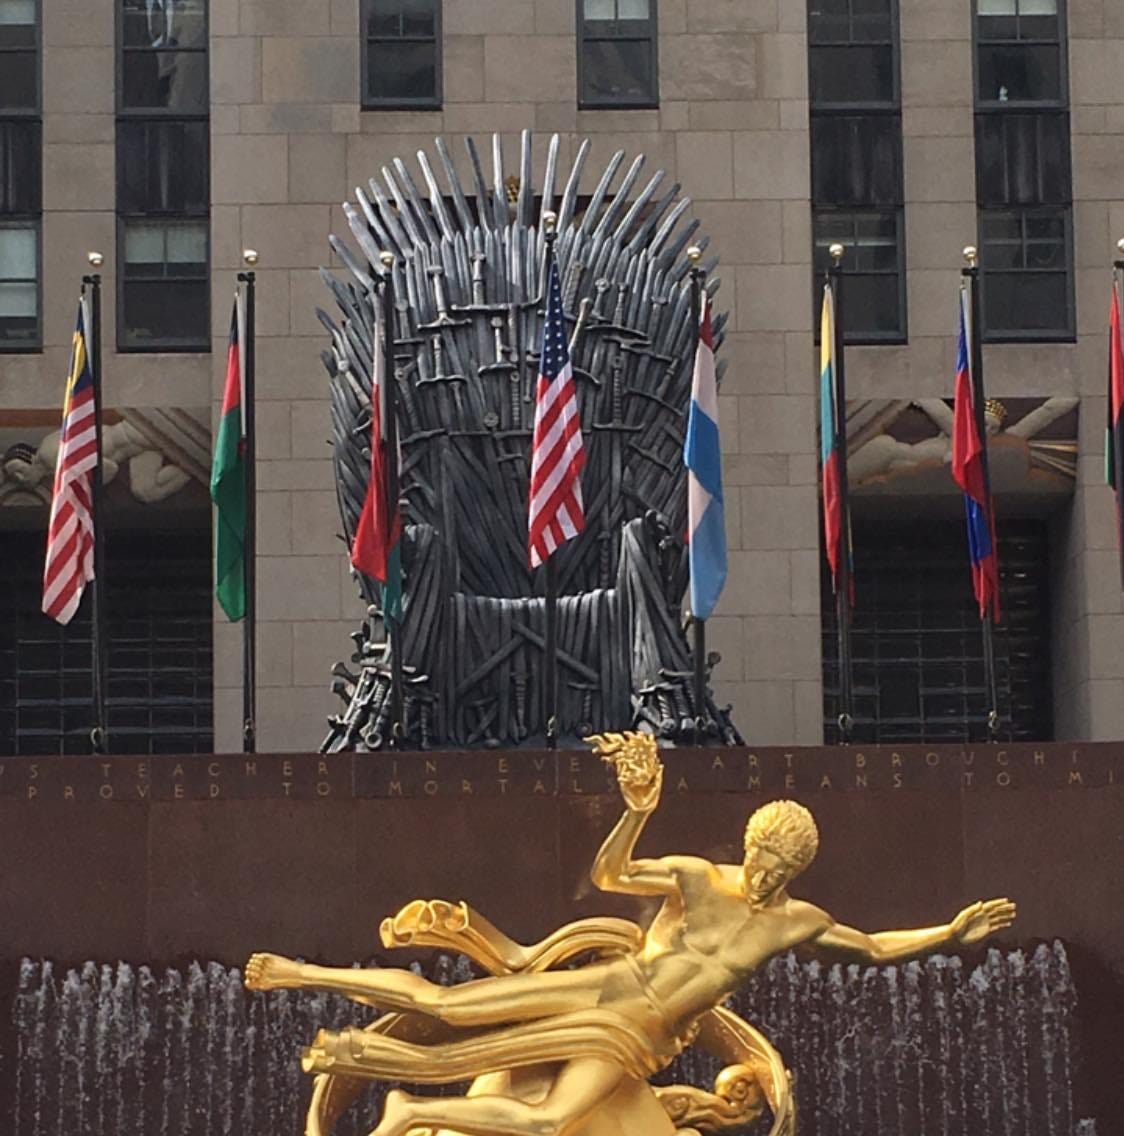 Come see a giant Iron Throne at Rockefeller Center ahead of 'Game of Thrones' premiere